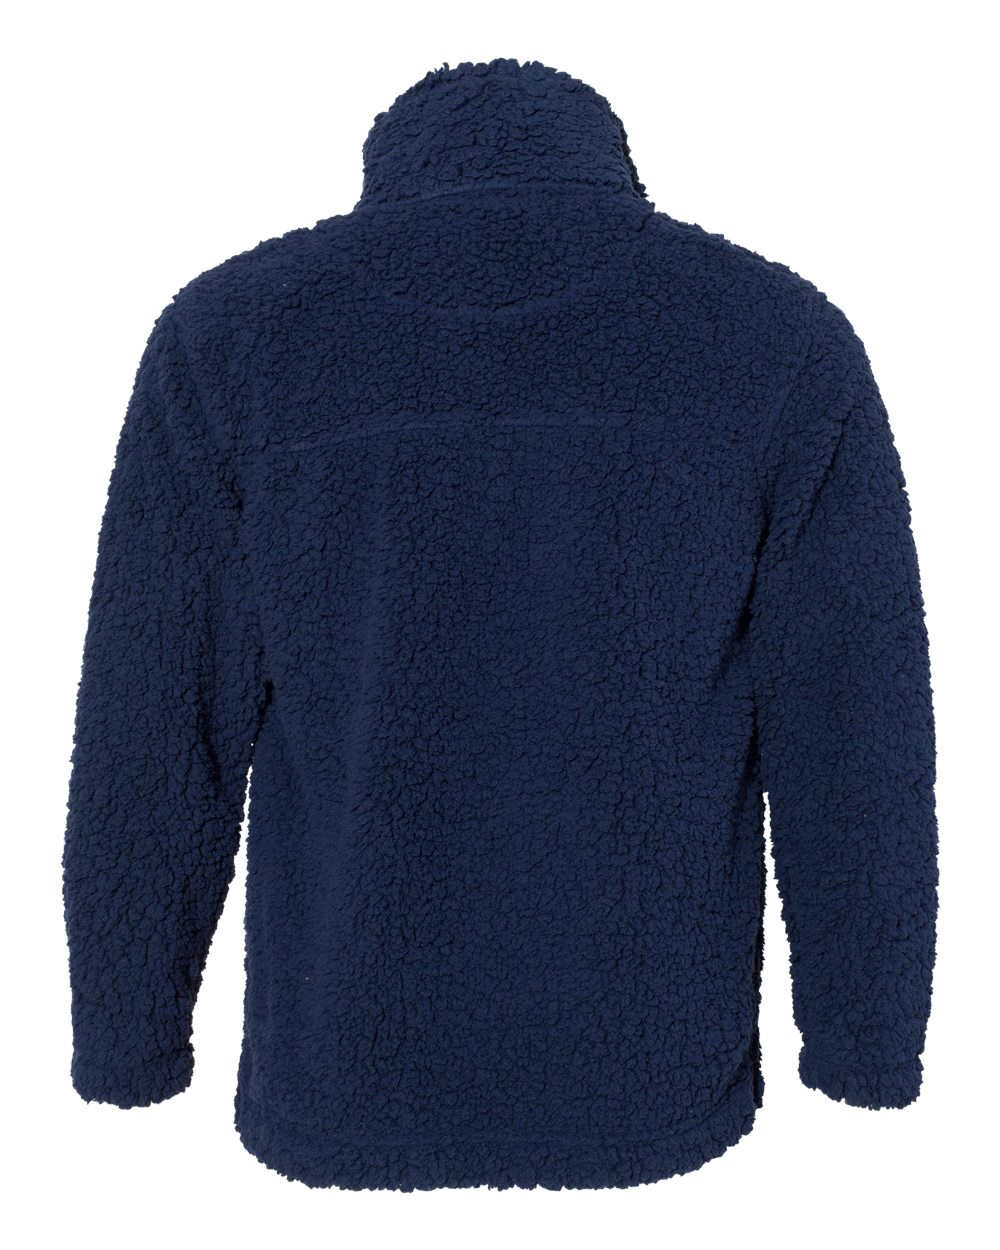 Boxercraft-Unisex-Sherpa-Quarter-Zip-Pullover-Sweatshirt-Sweater-Q10-up-to-3XL thumbnail 33